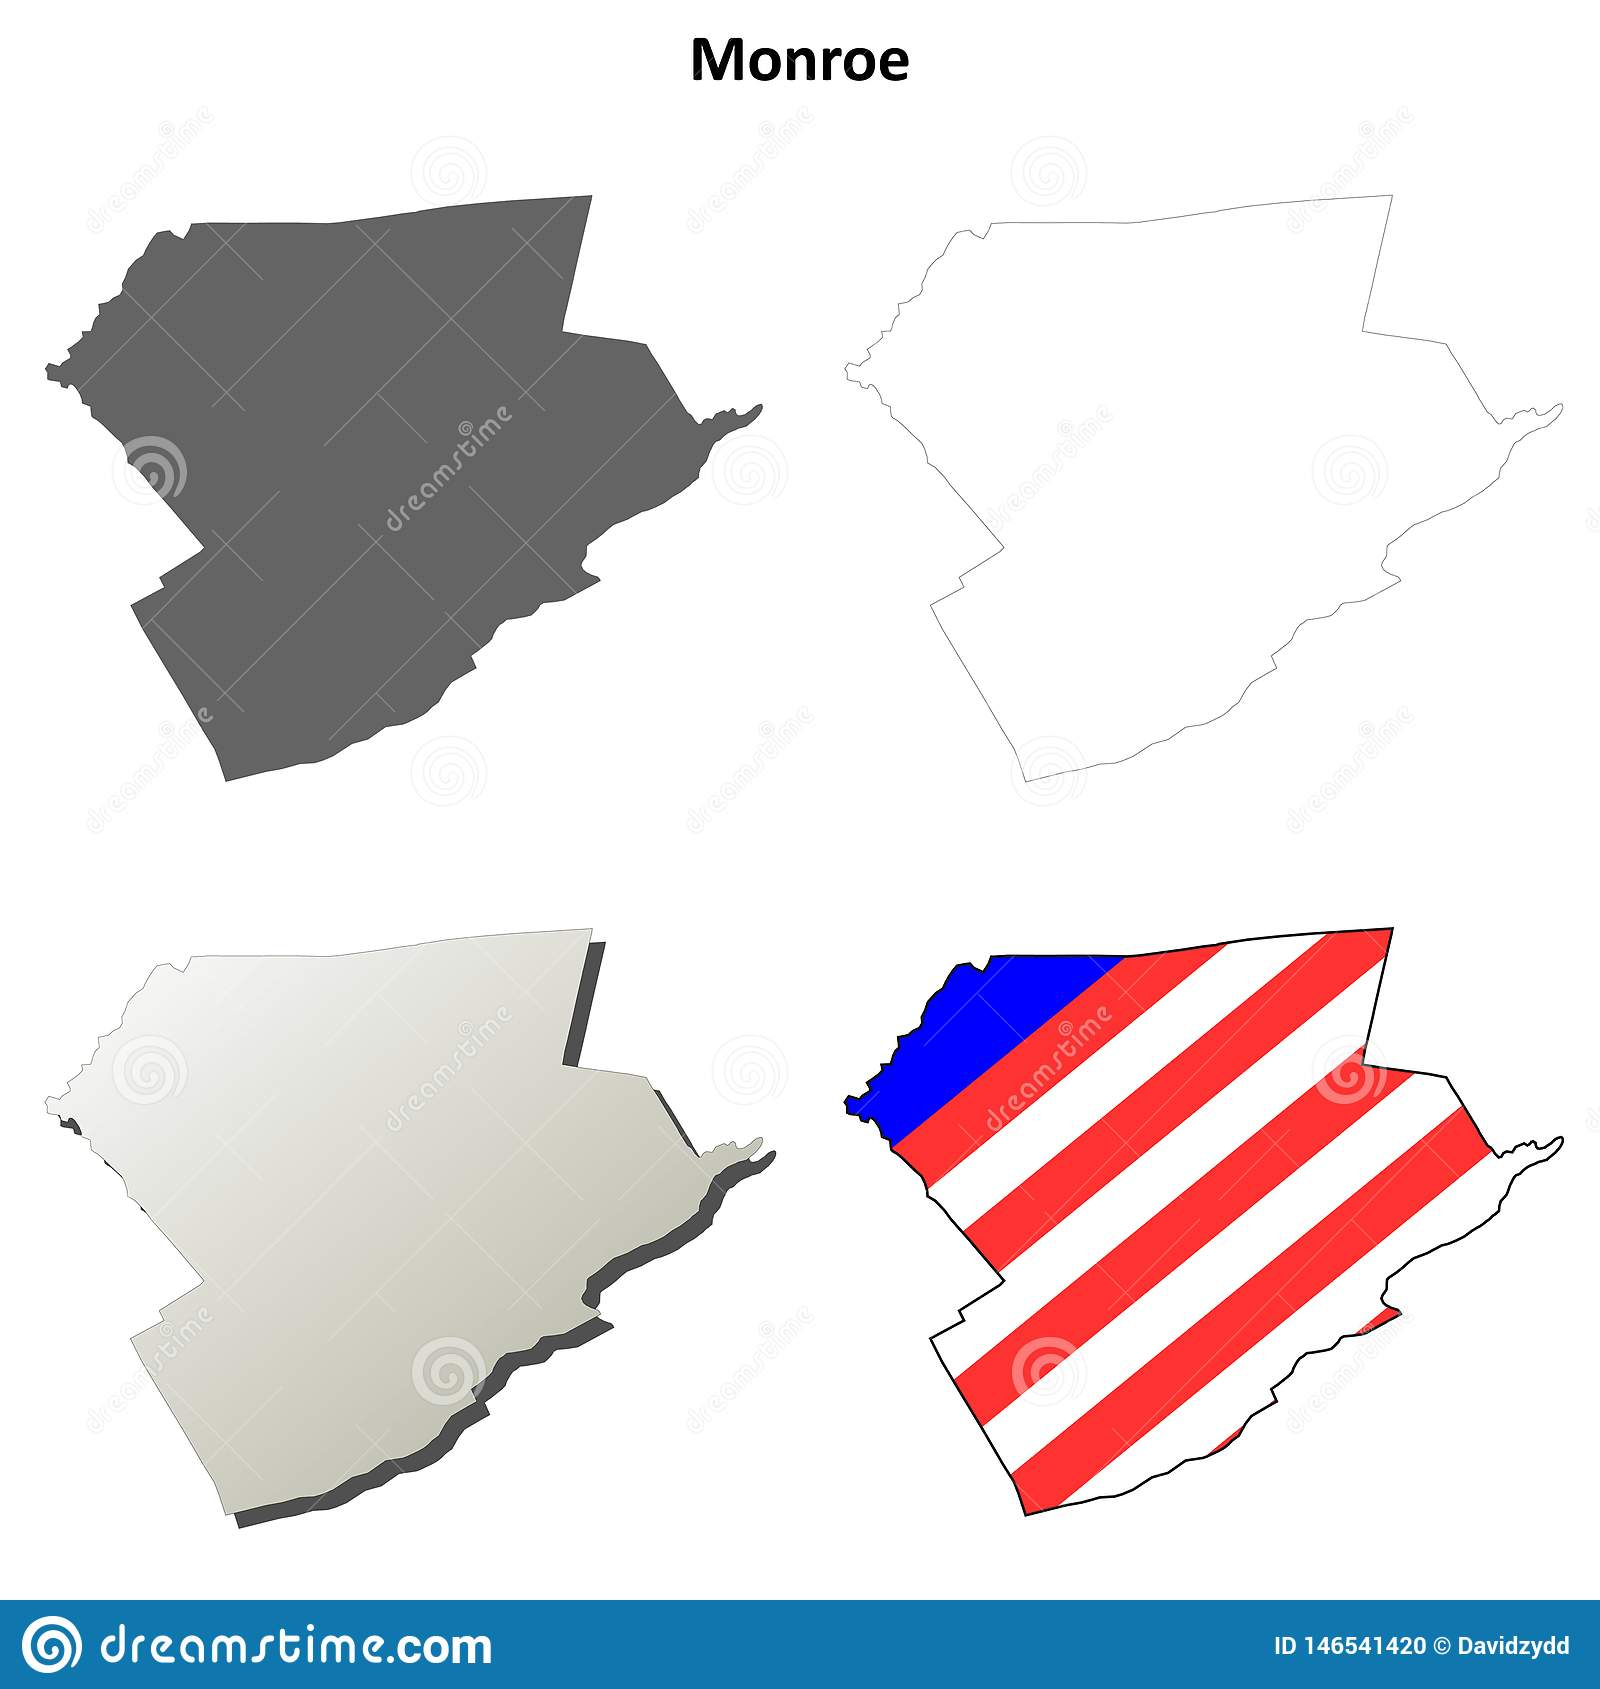 Image of: Monroe County Pennsylvania Outline Map Set Stock Vector Illustration Of Outline Pennsylvania 146541420